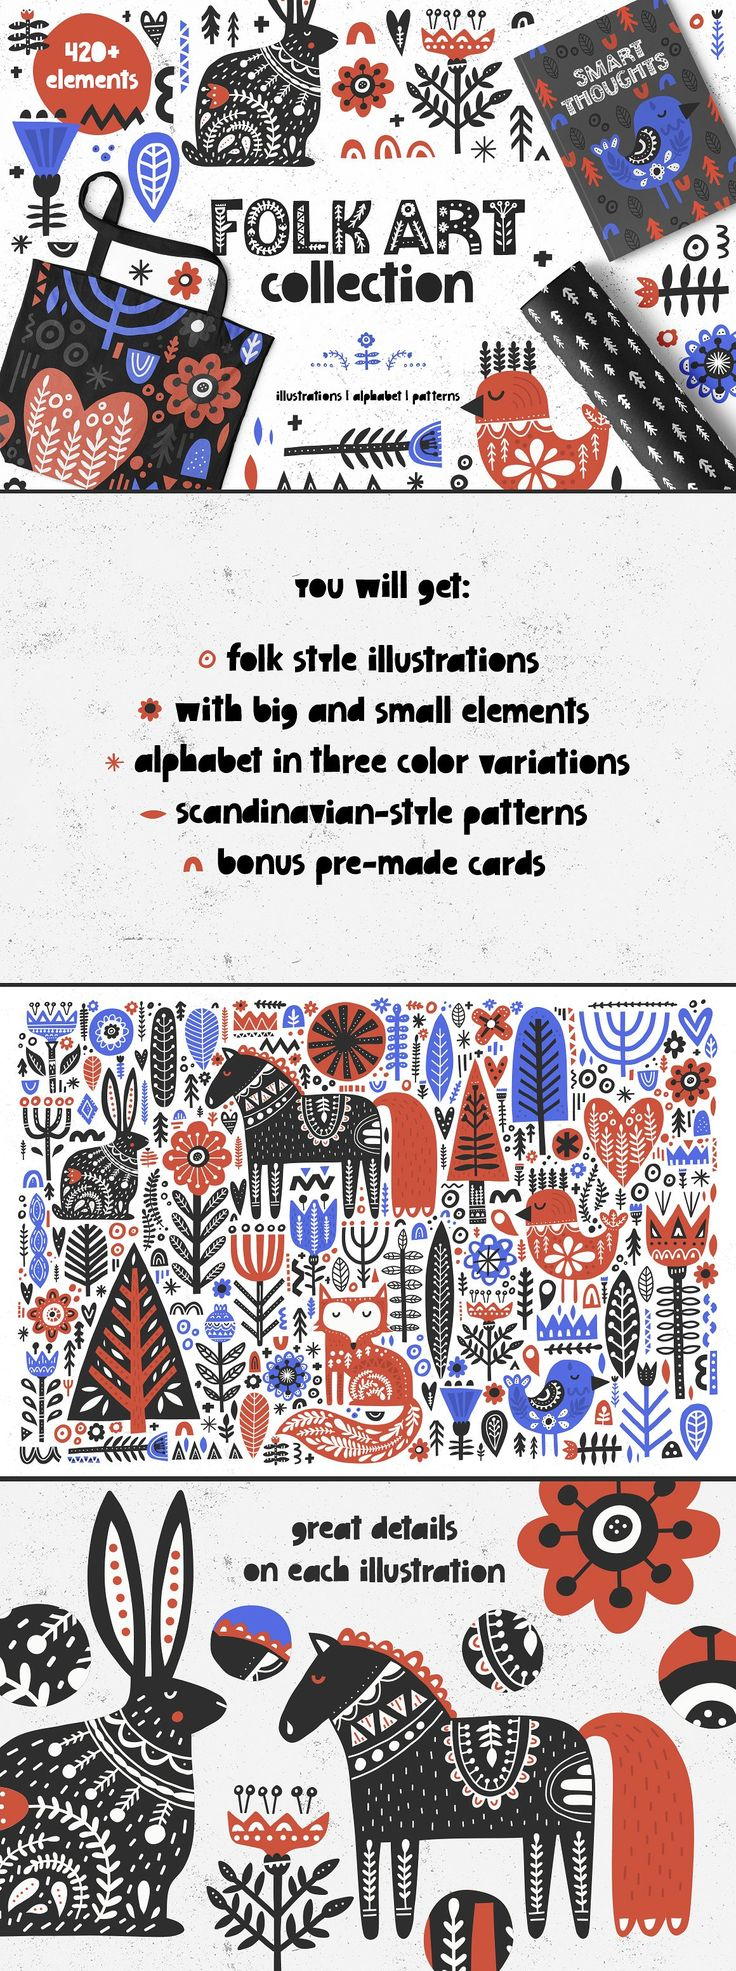 Folk Art Collection is big set of graphic in scandinavian style - you will find animals, flowers, trees, hearts, ornaments and even an alphabet there, more than 420 elements in total. Mix & match illustrations with letters to create greeting cards or use graphic on t-shirts, posters, mugs.